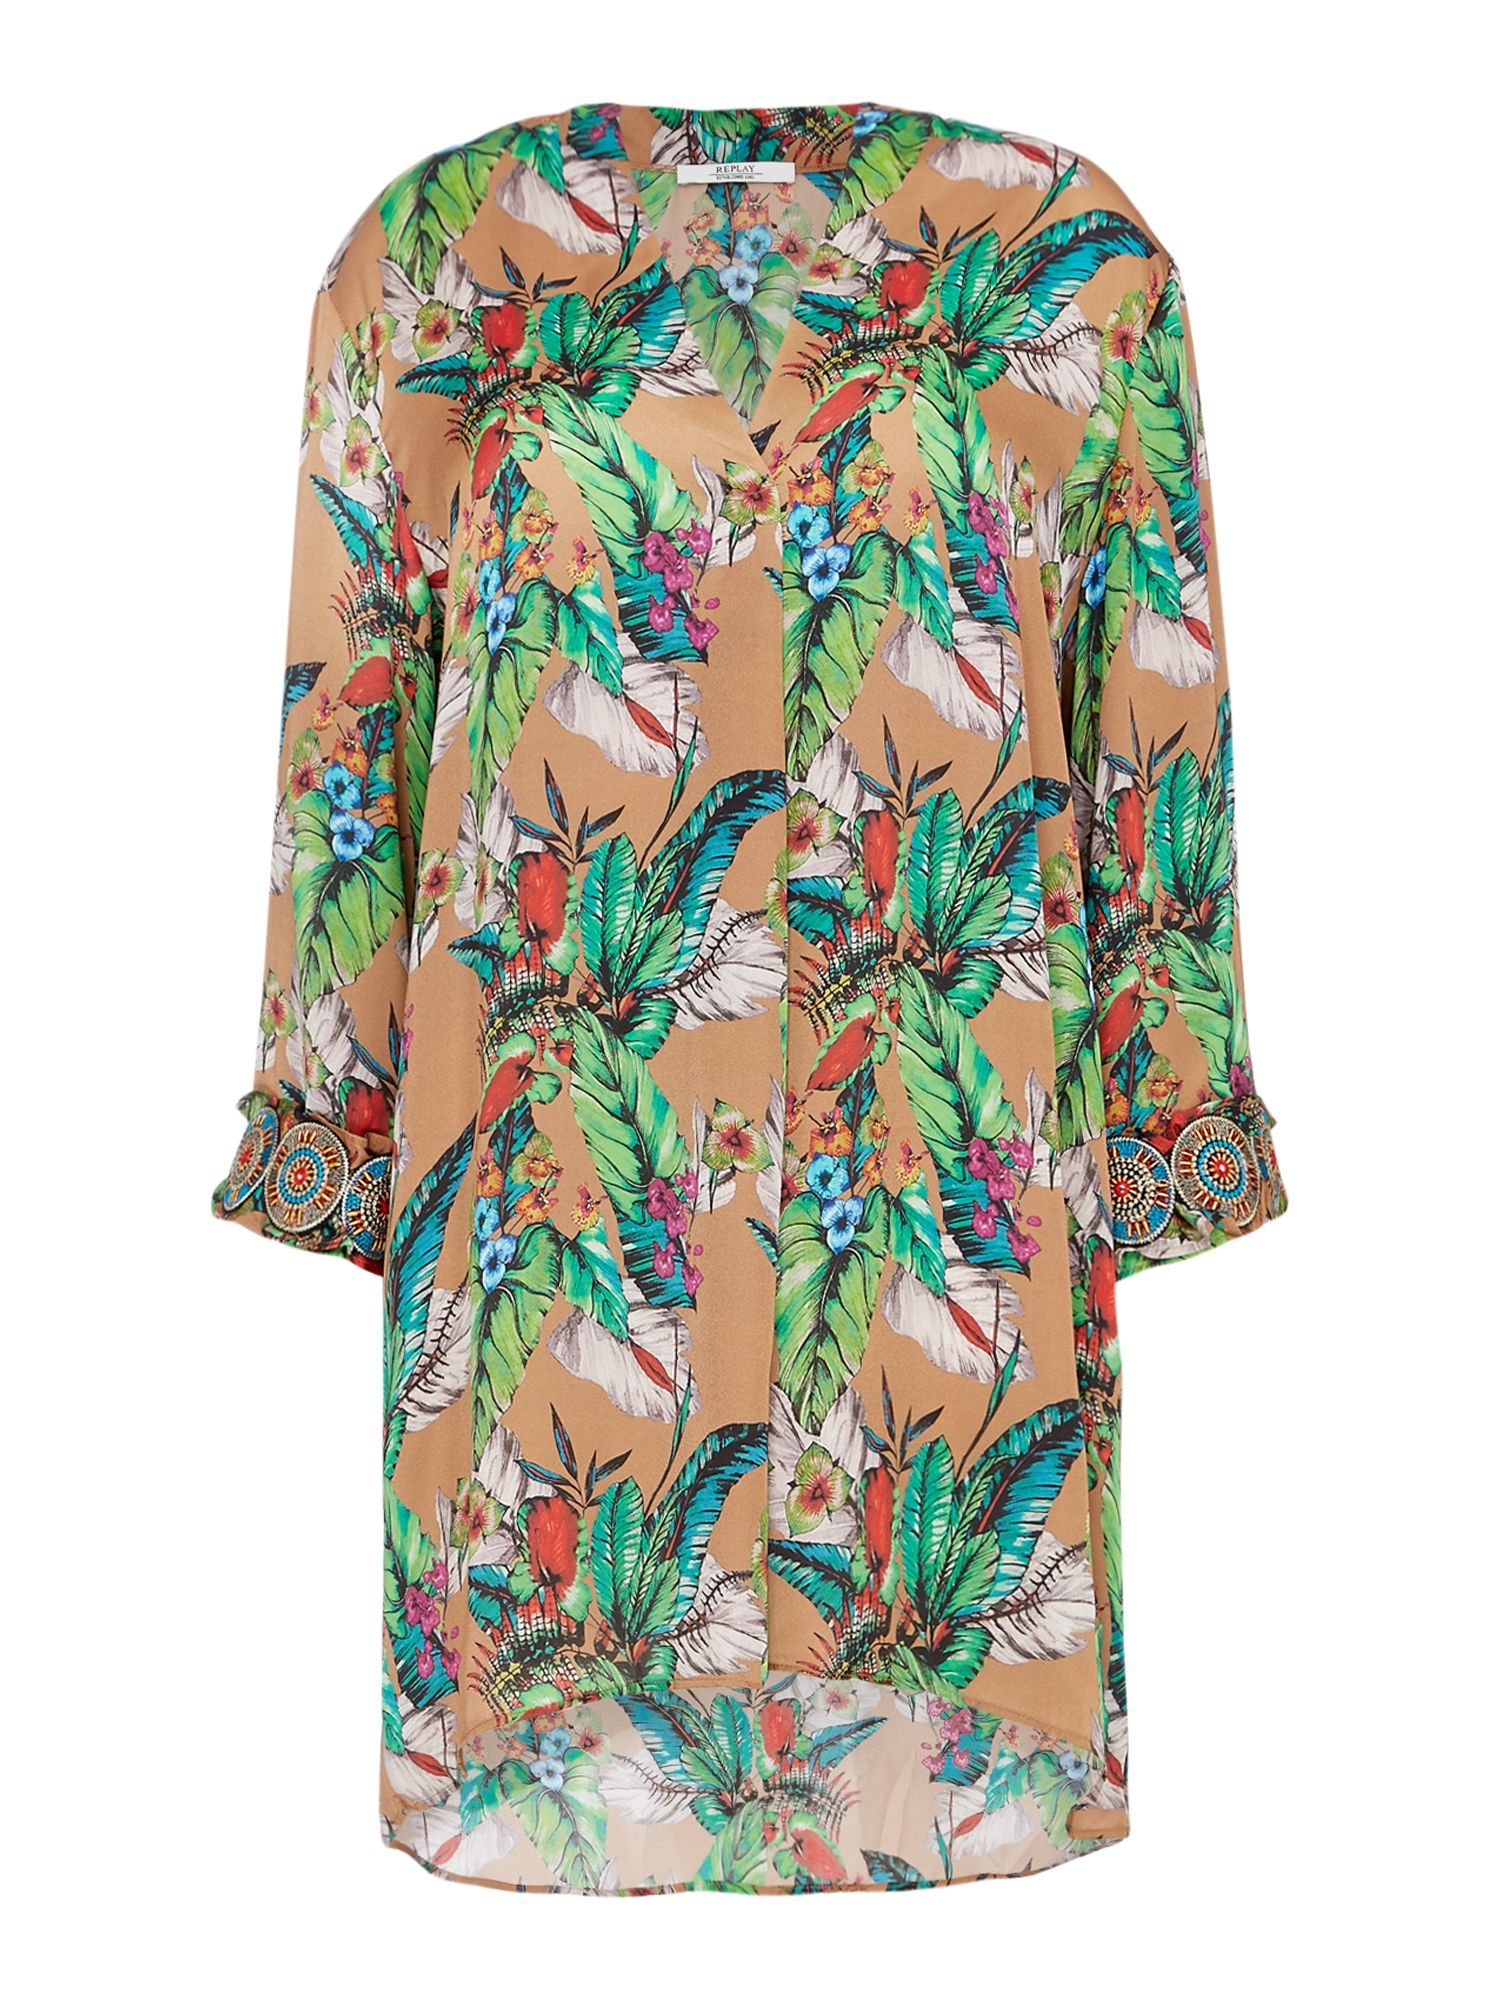 Replay Cotton And Viscose Floral Blouse, Multi-Coloured